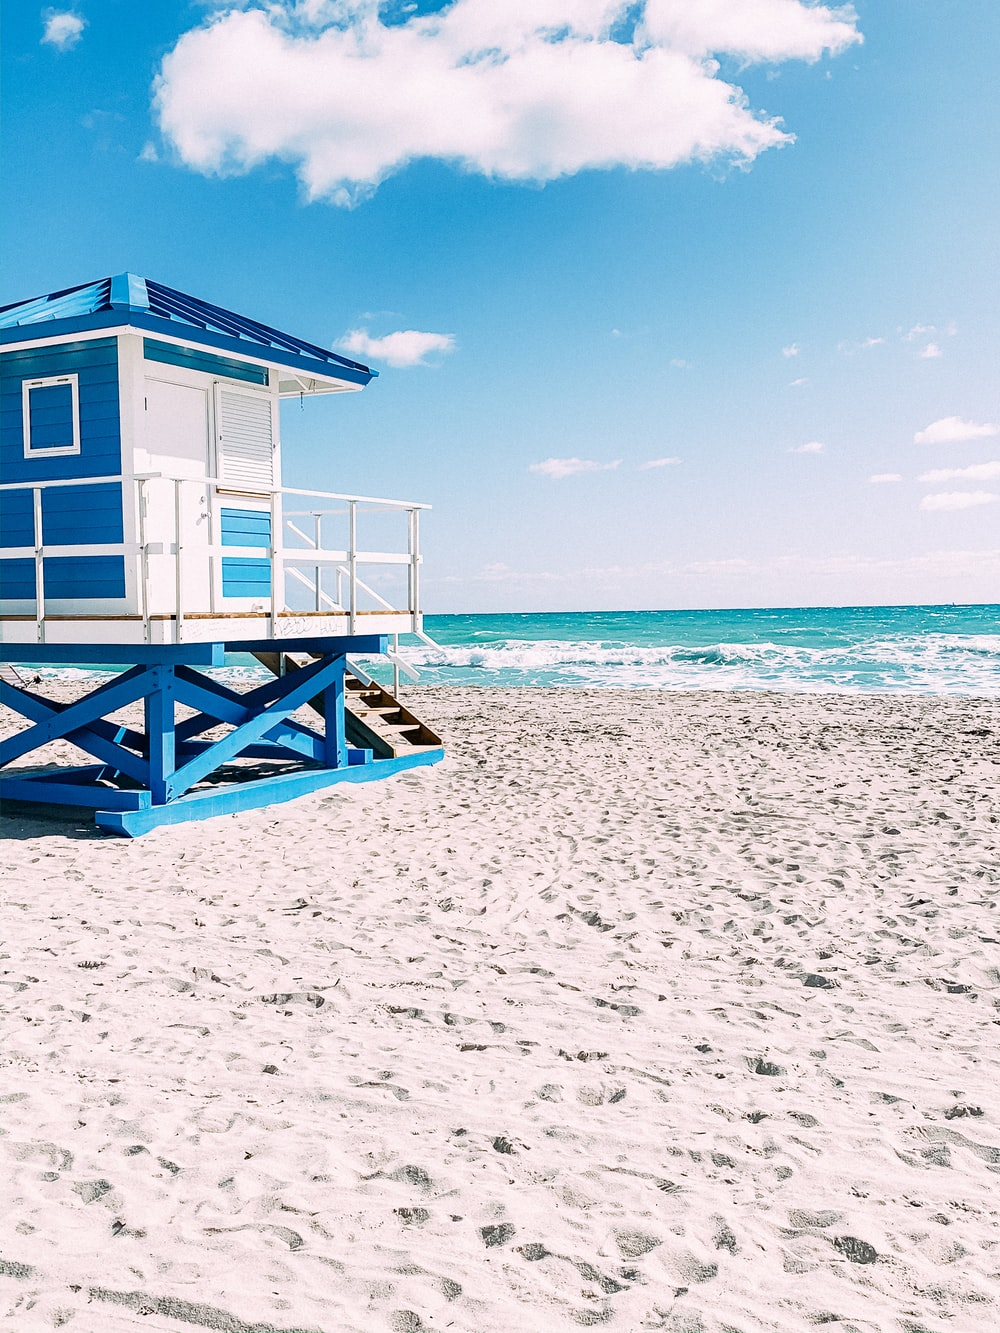 white wooden lifeguard house on beach during daytime